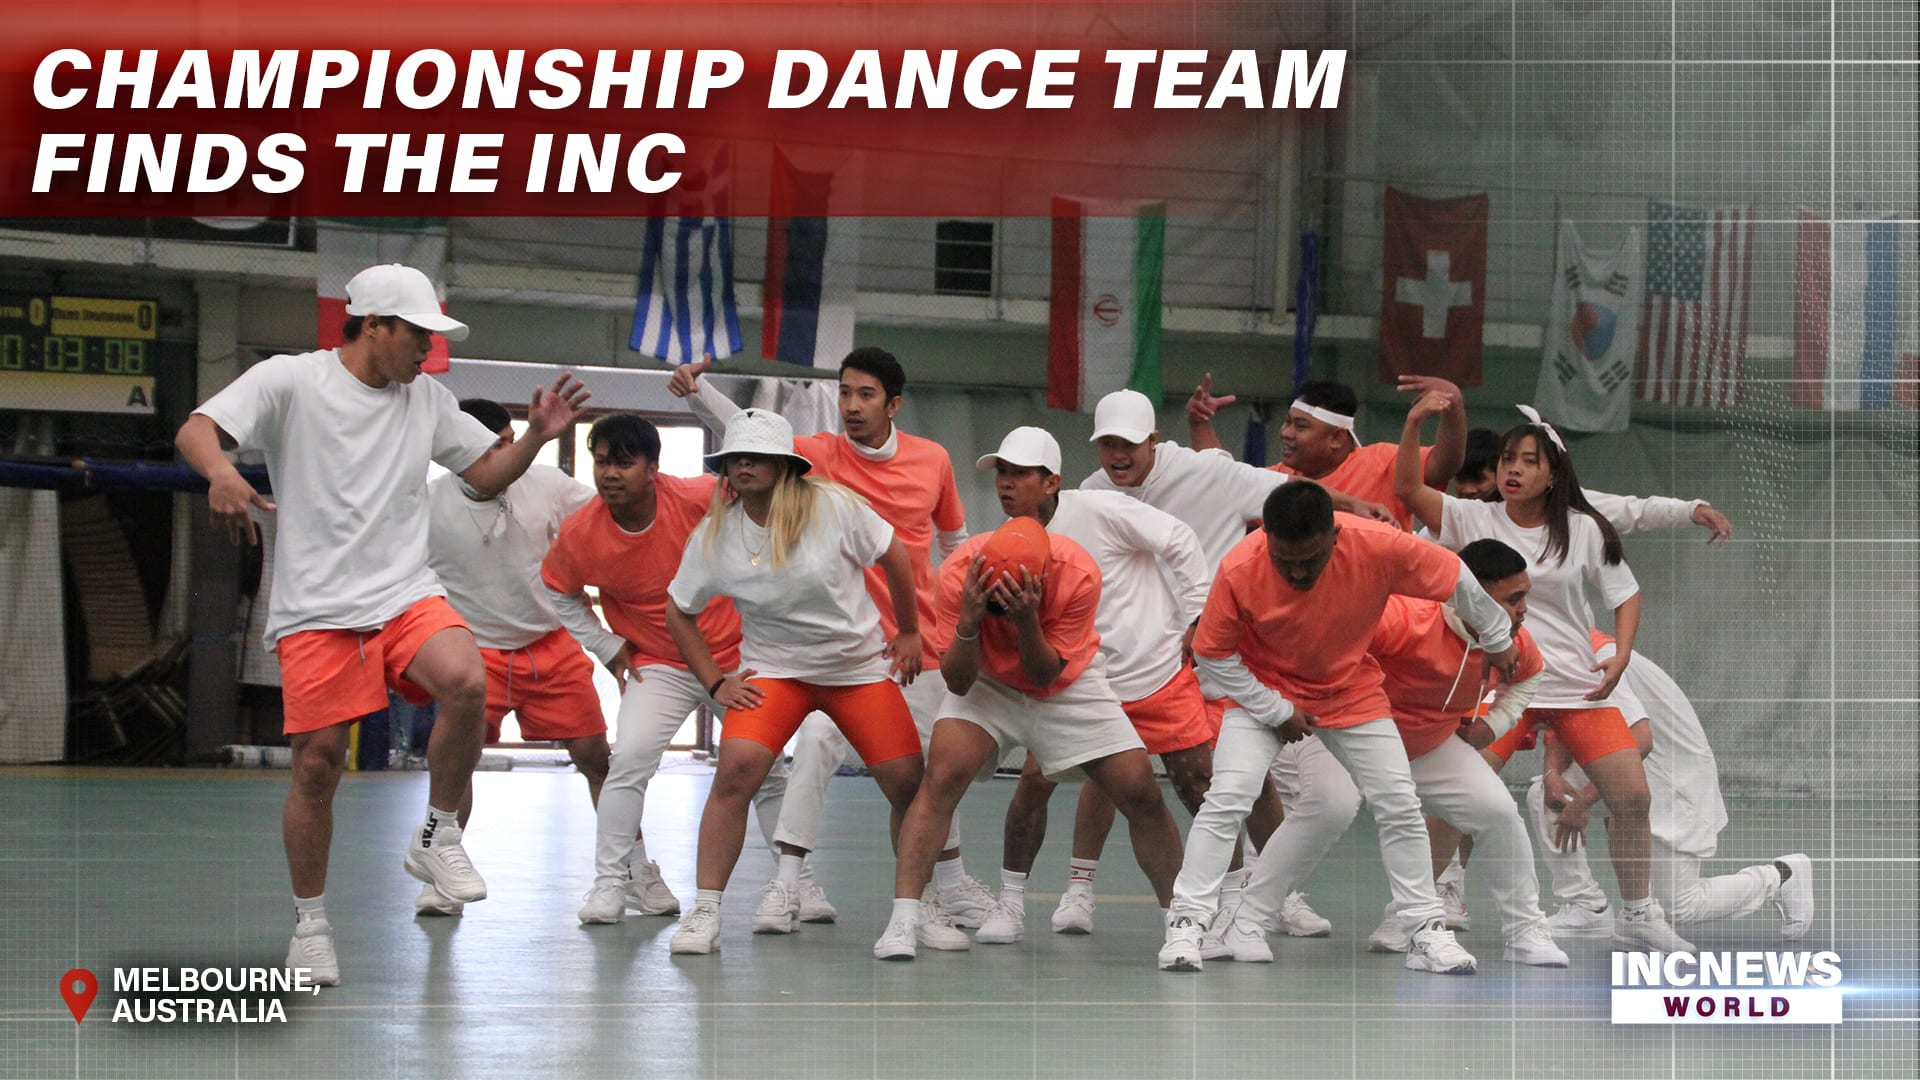 Championship Dance Team Finds the INC